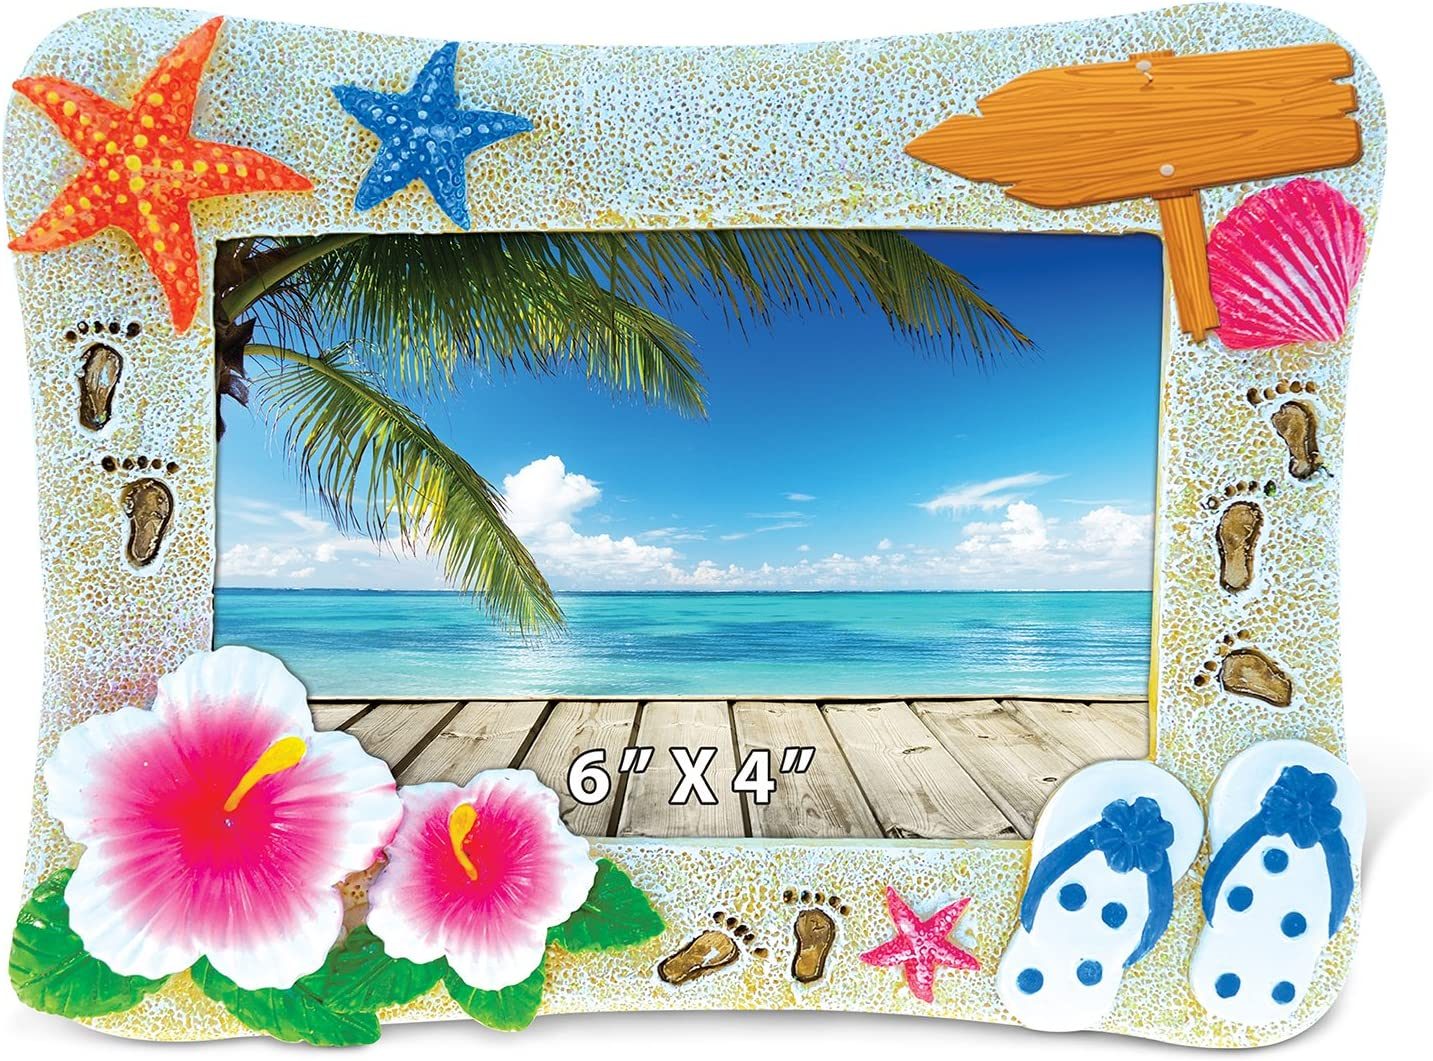 """Puzzled Resin """"Summer Beach"""" Picture Frame, 6 x 4 Inch Sculptural Photo Holder Intricate & Meticulous Detailing Art Handcrafted Tabletop Accent Accessory Coastal Nautical Tropical Themed Home Décor"""